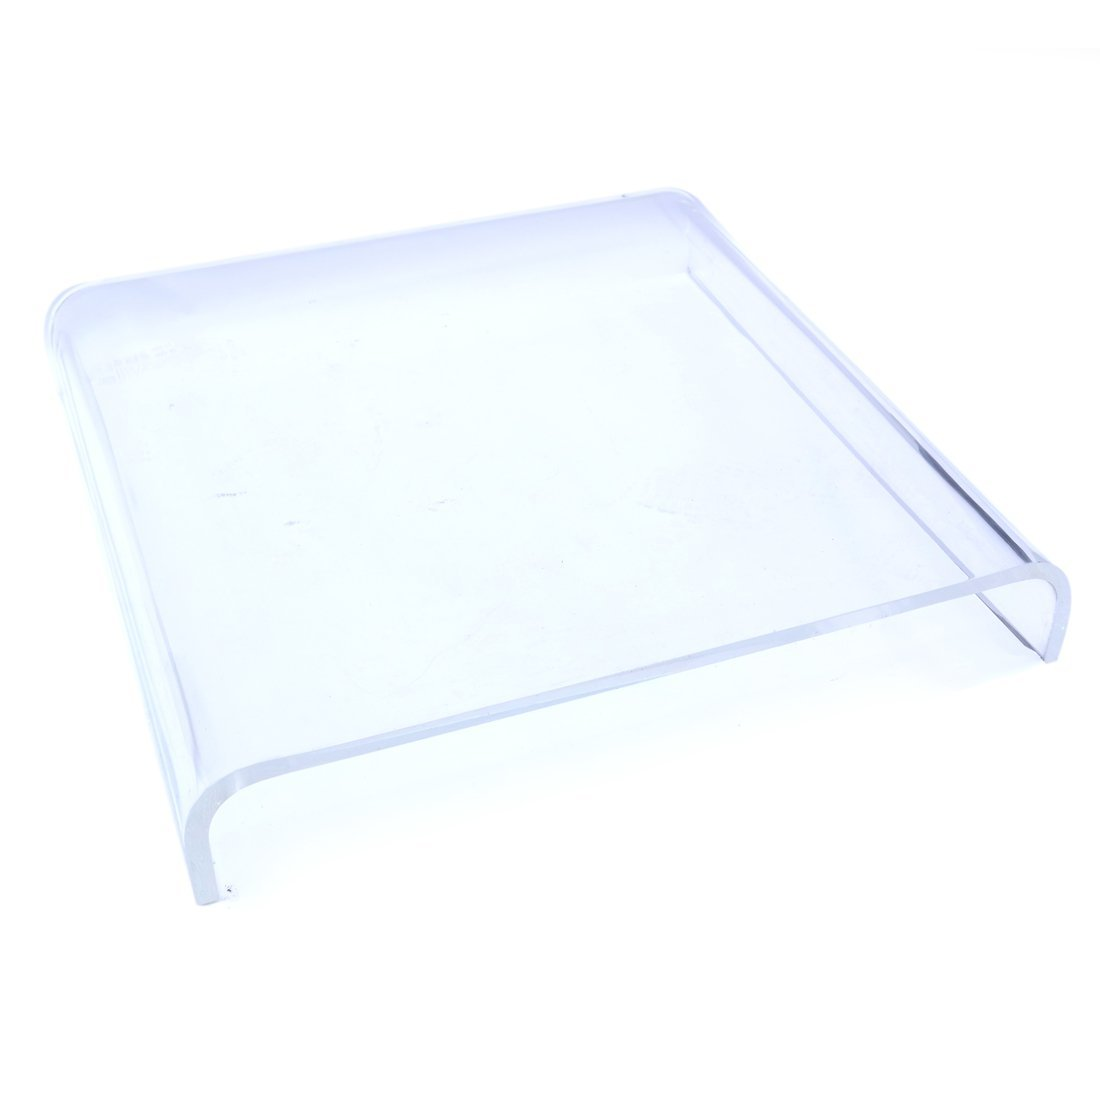 Lucite Low Coffee Table